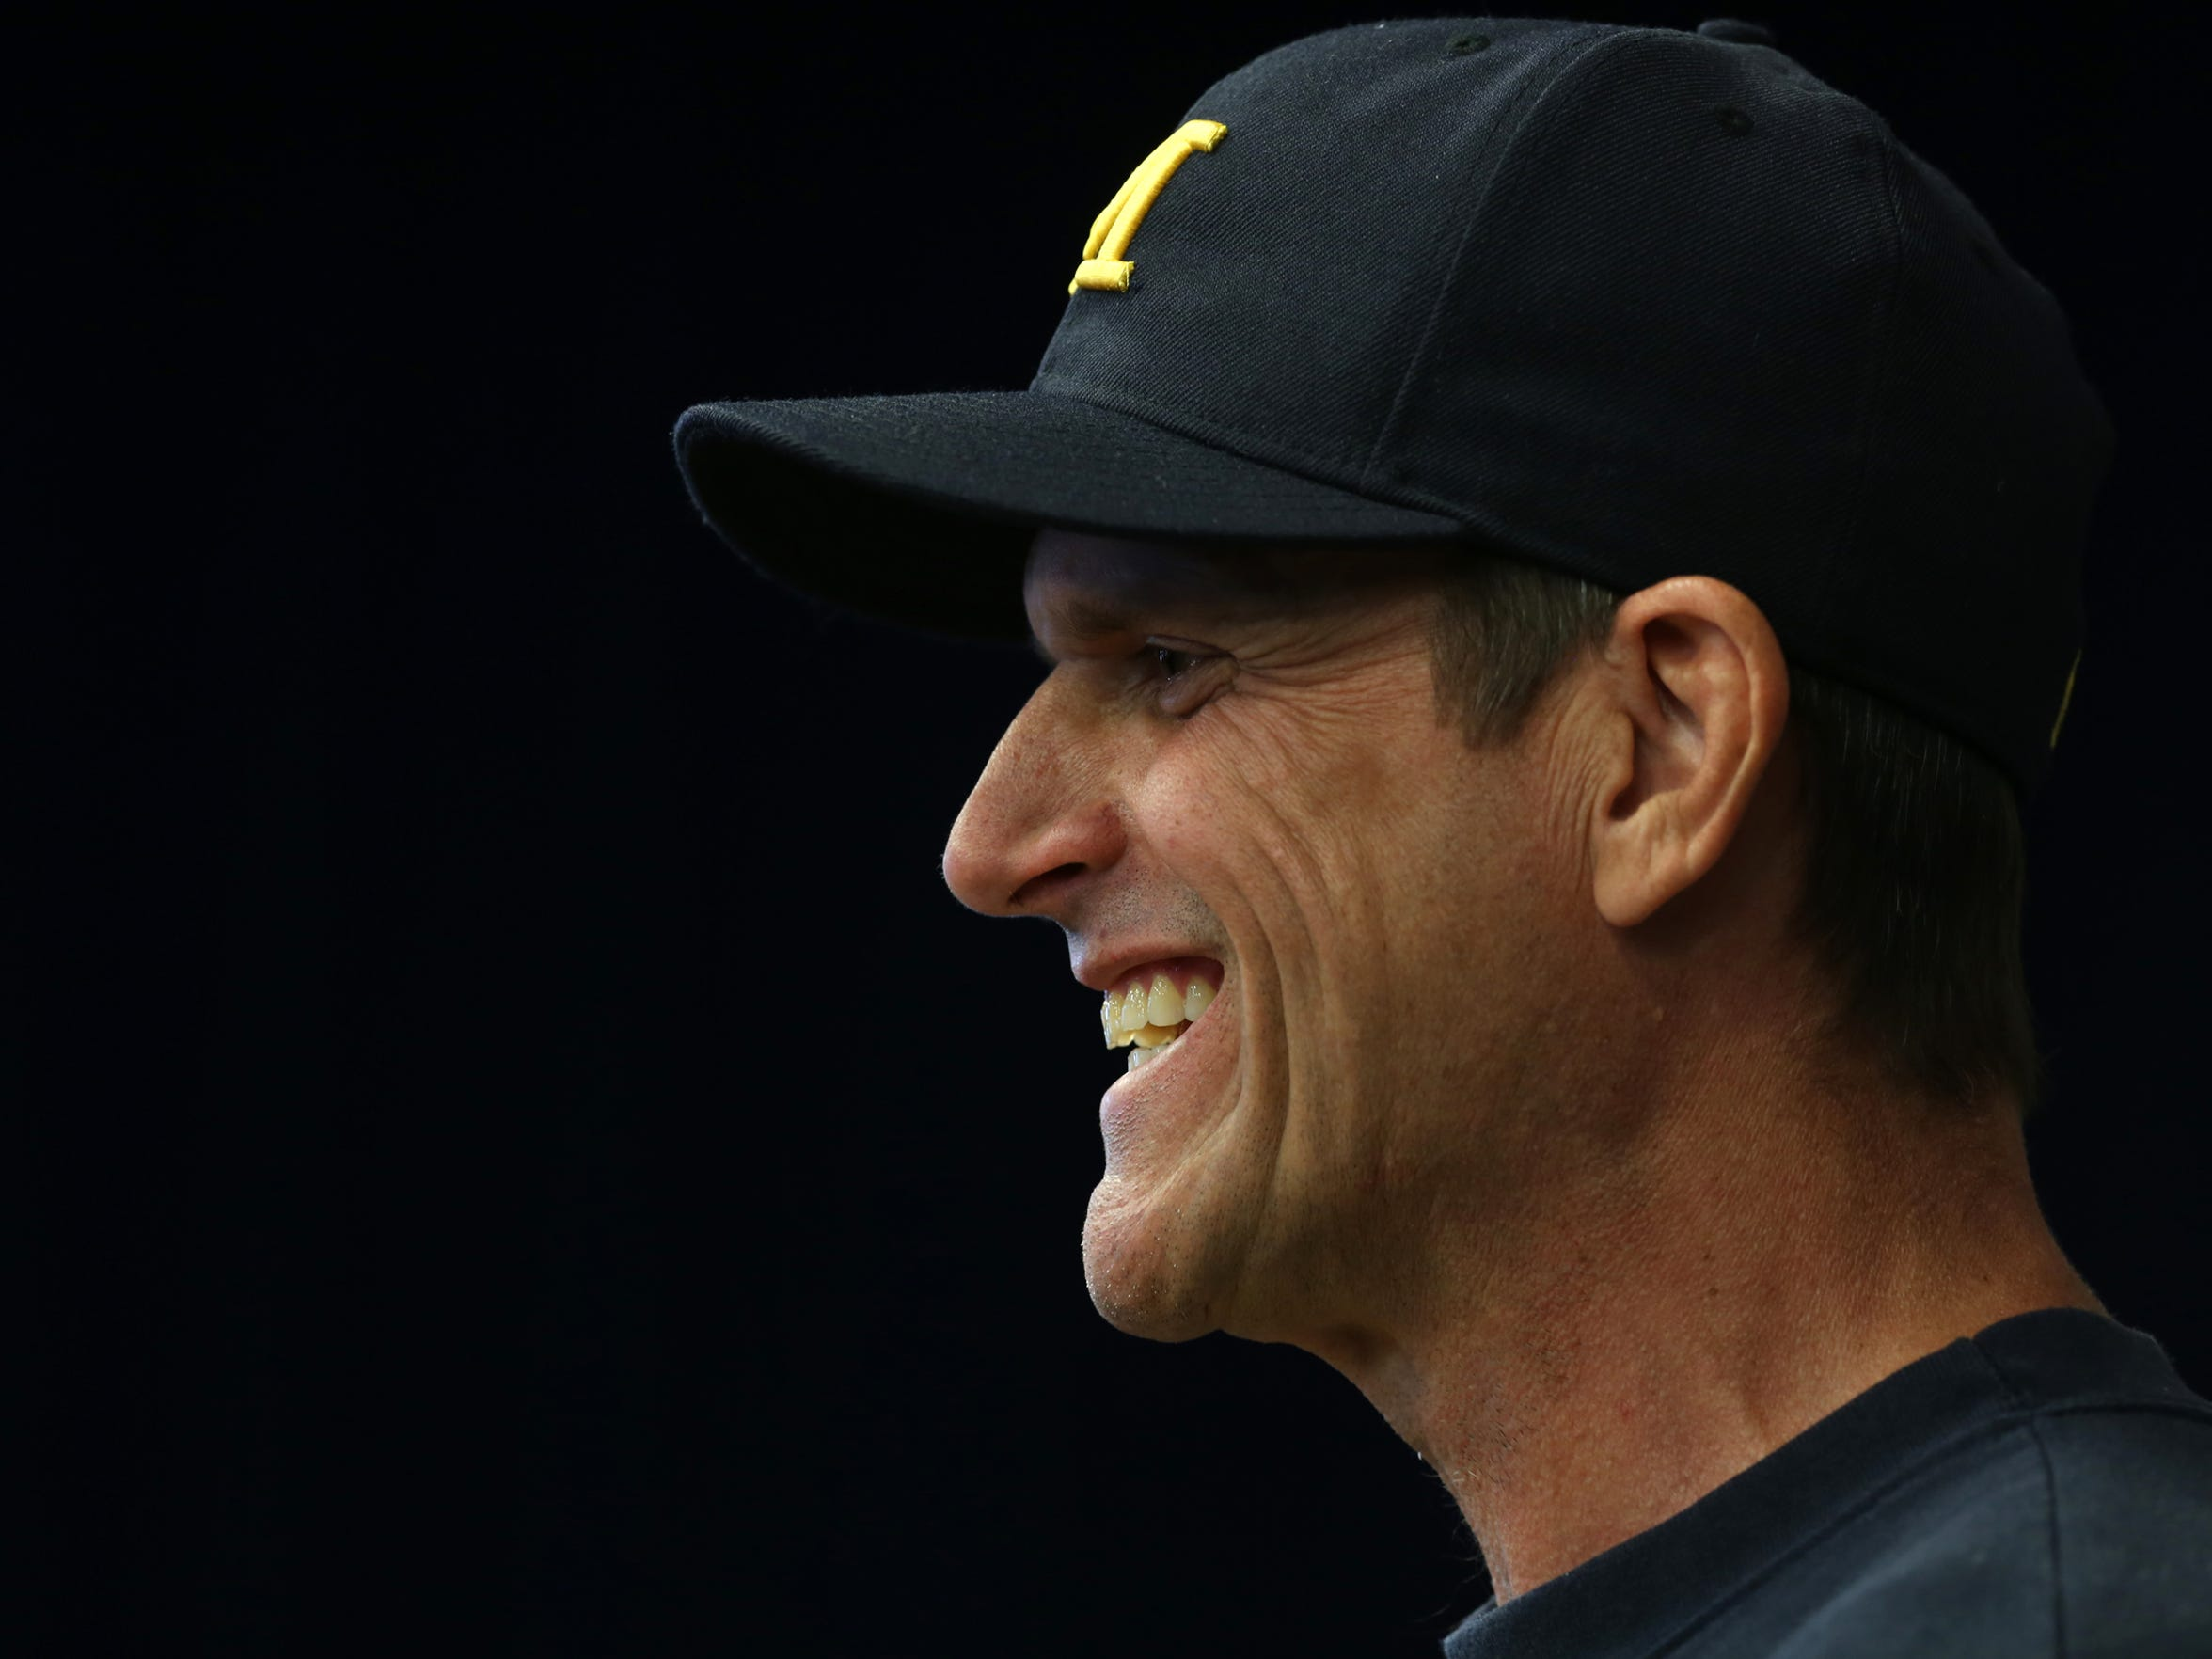 Aug. 27, 2015: Michigan head football coach Jim Harbaugh laughs with a member of the media during a question after his press conference at the Crisler Center Media Room in Ann Arbor.